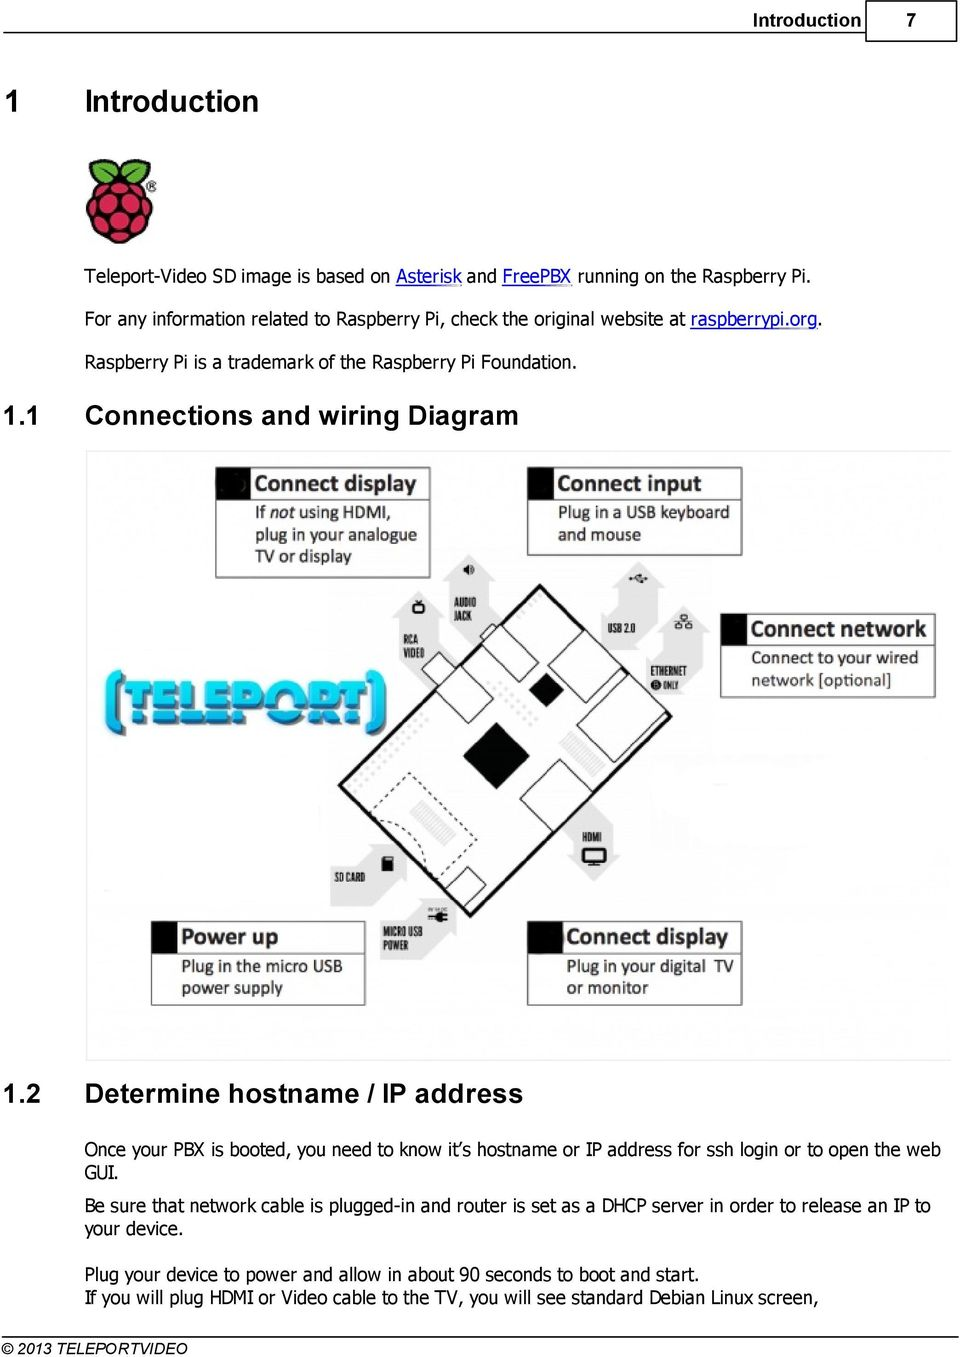 Ip Phone Wiring Diagram Pbx Library 1 Connections And 12 Determine Hostname Address Once Your Is Booted